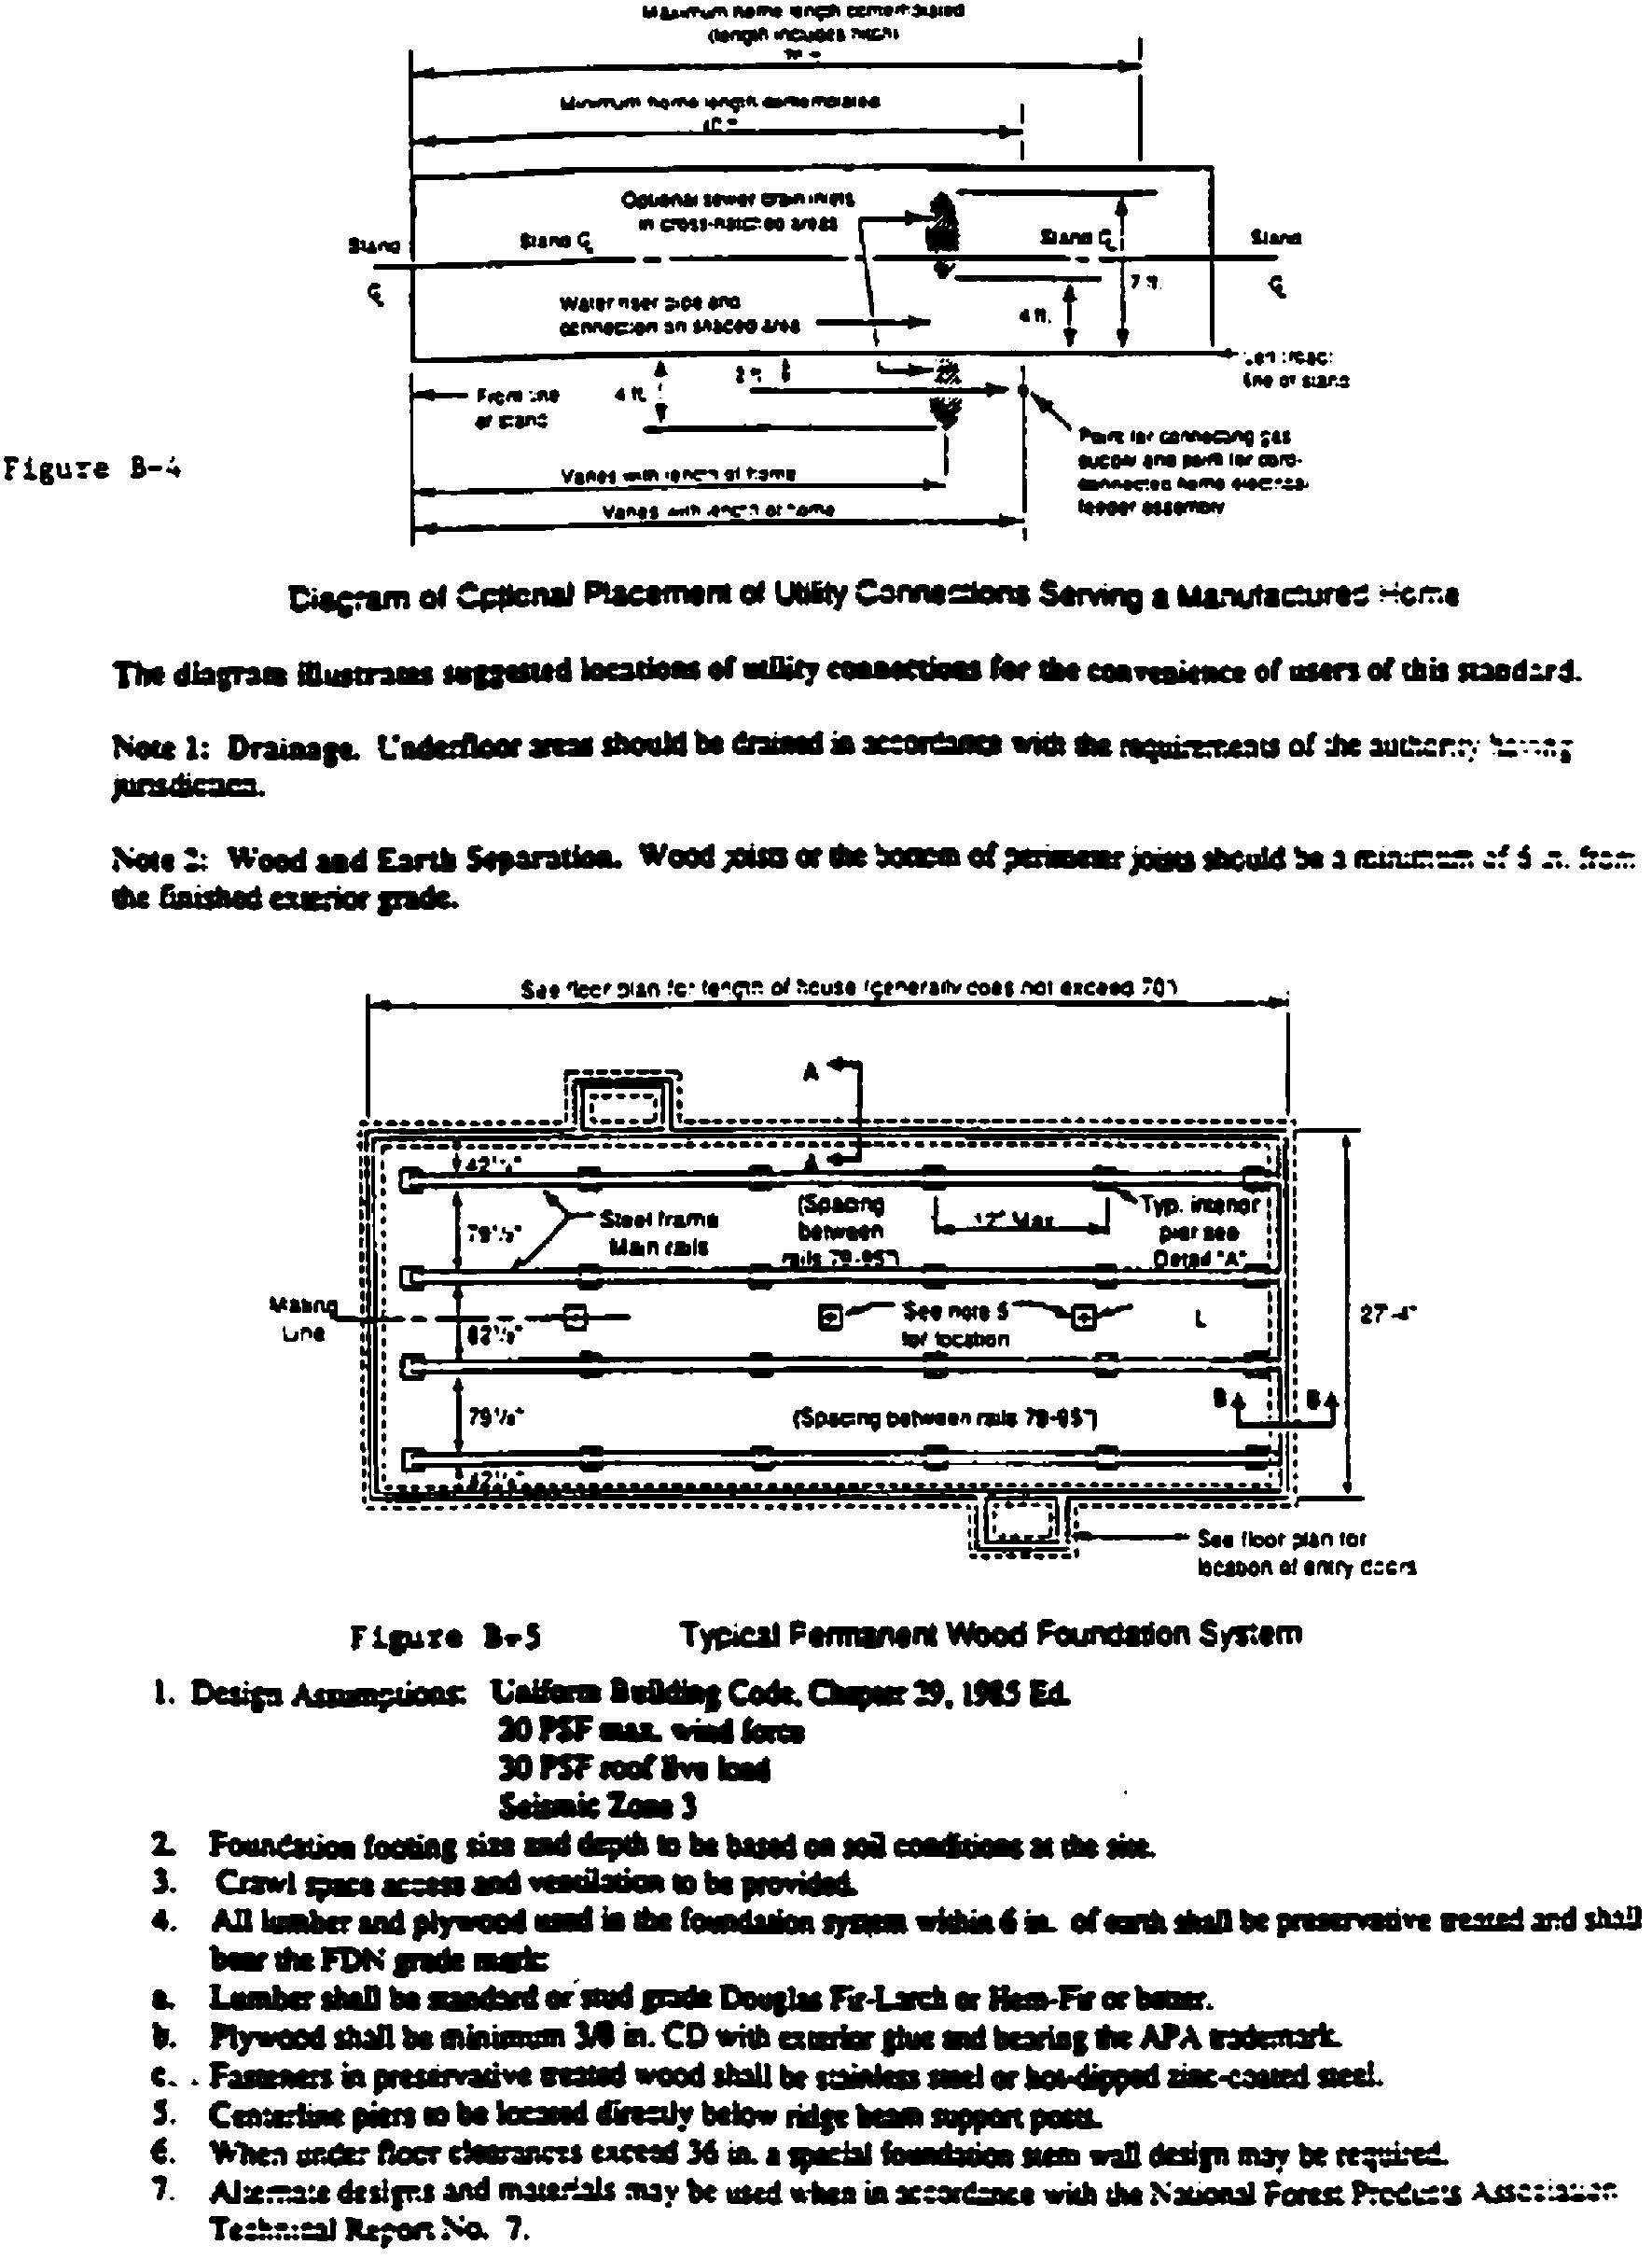 TYPICAL DESIGNS FOR LOAD-BEARING SUPPORTS FOR MANUFACTURED HOMES - Figure 3